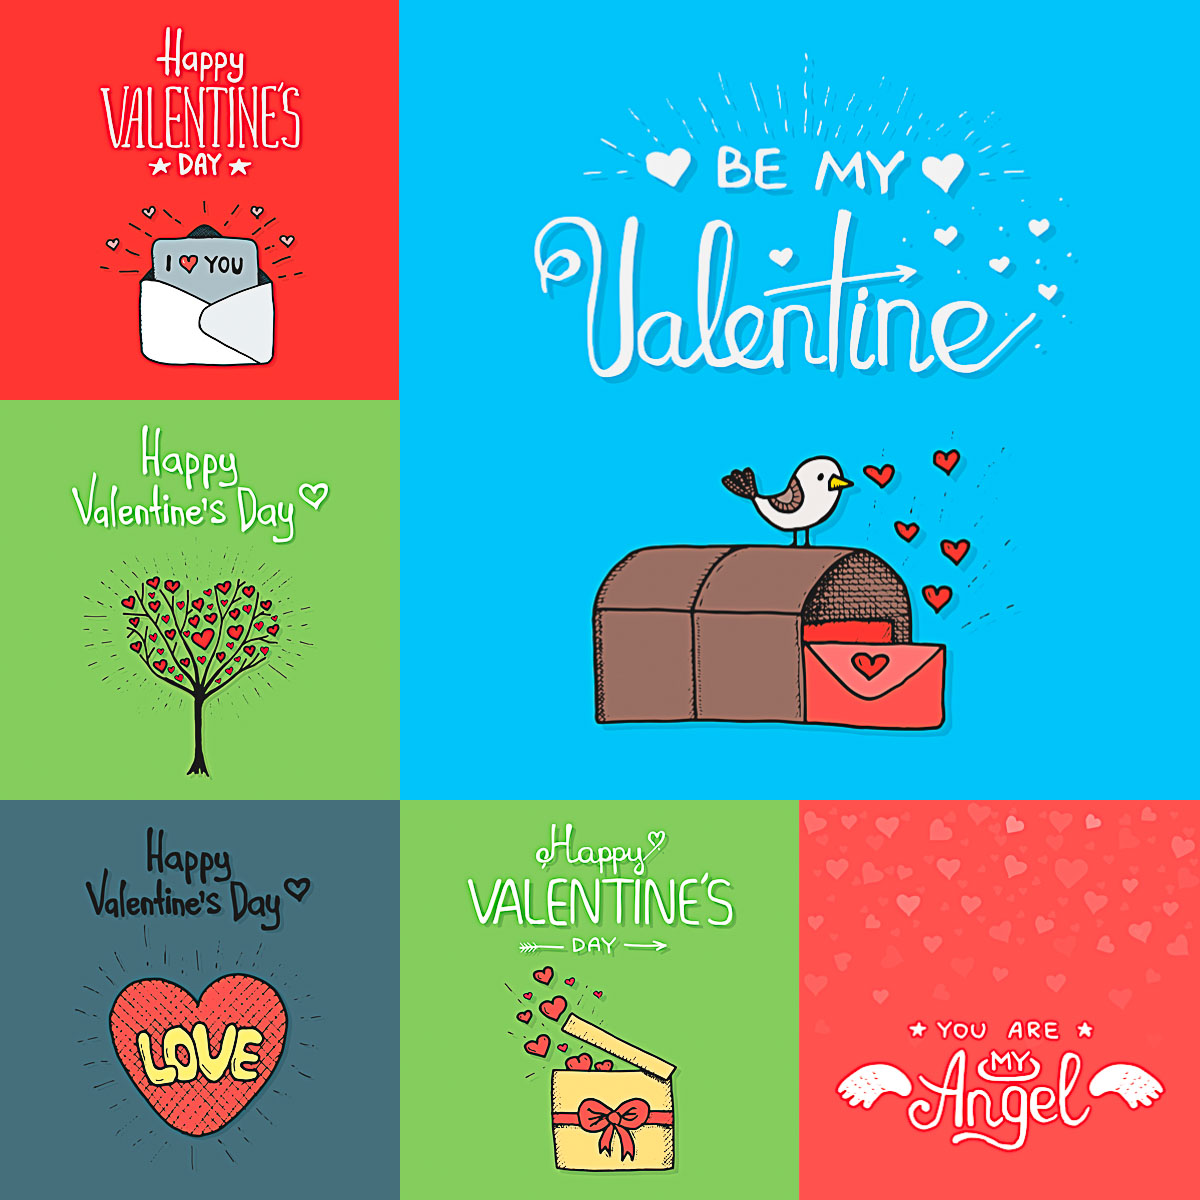 Cute valentines day cards with hand painted elements